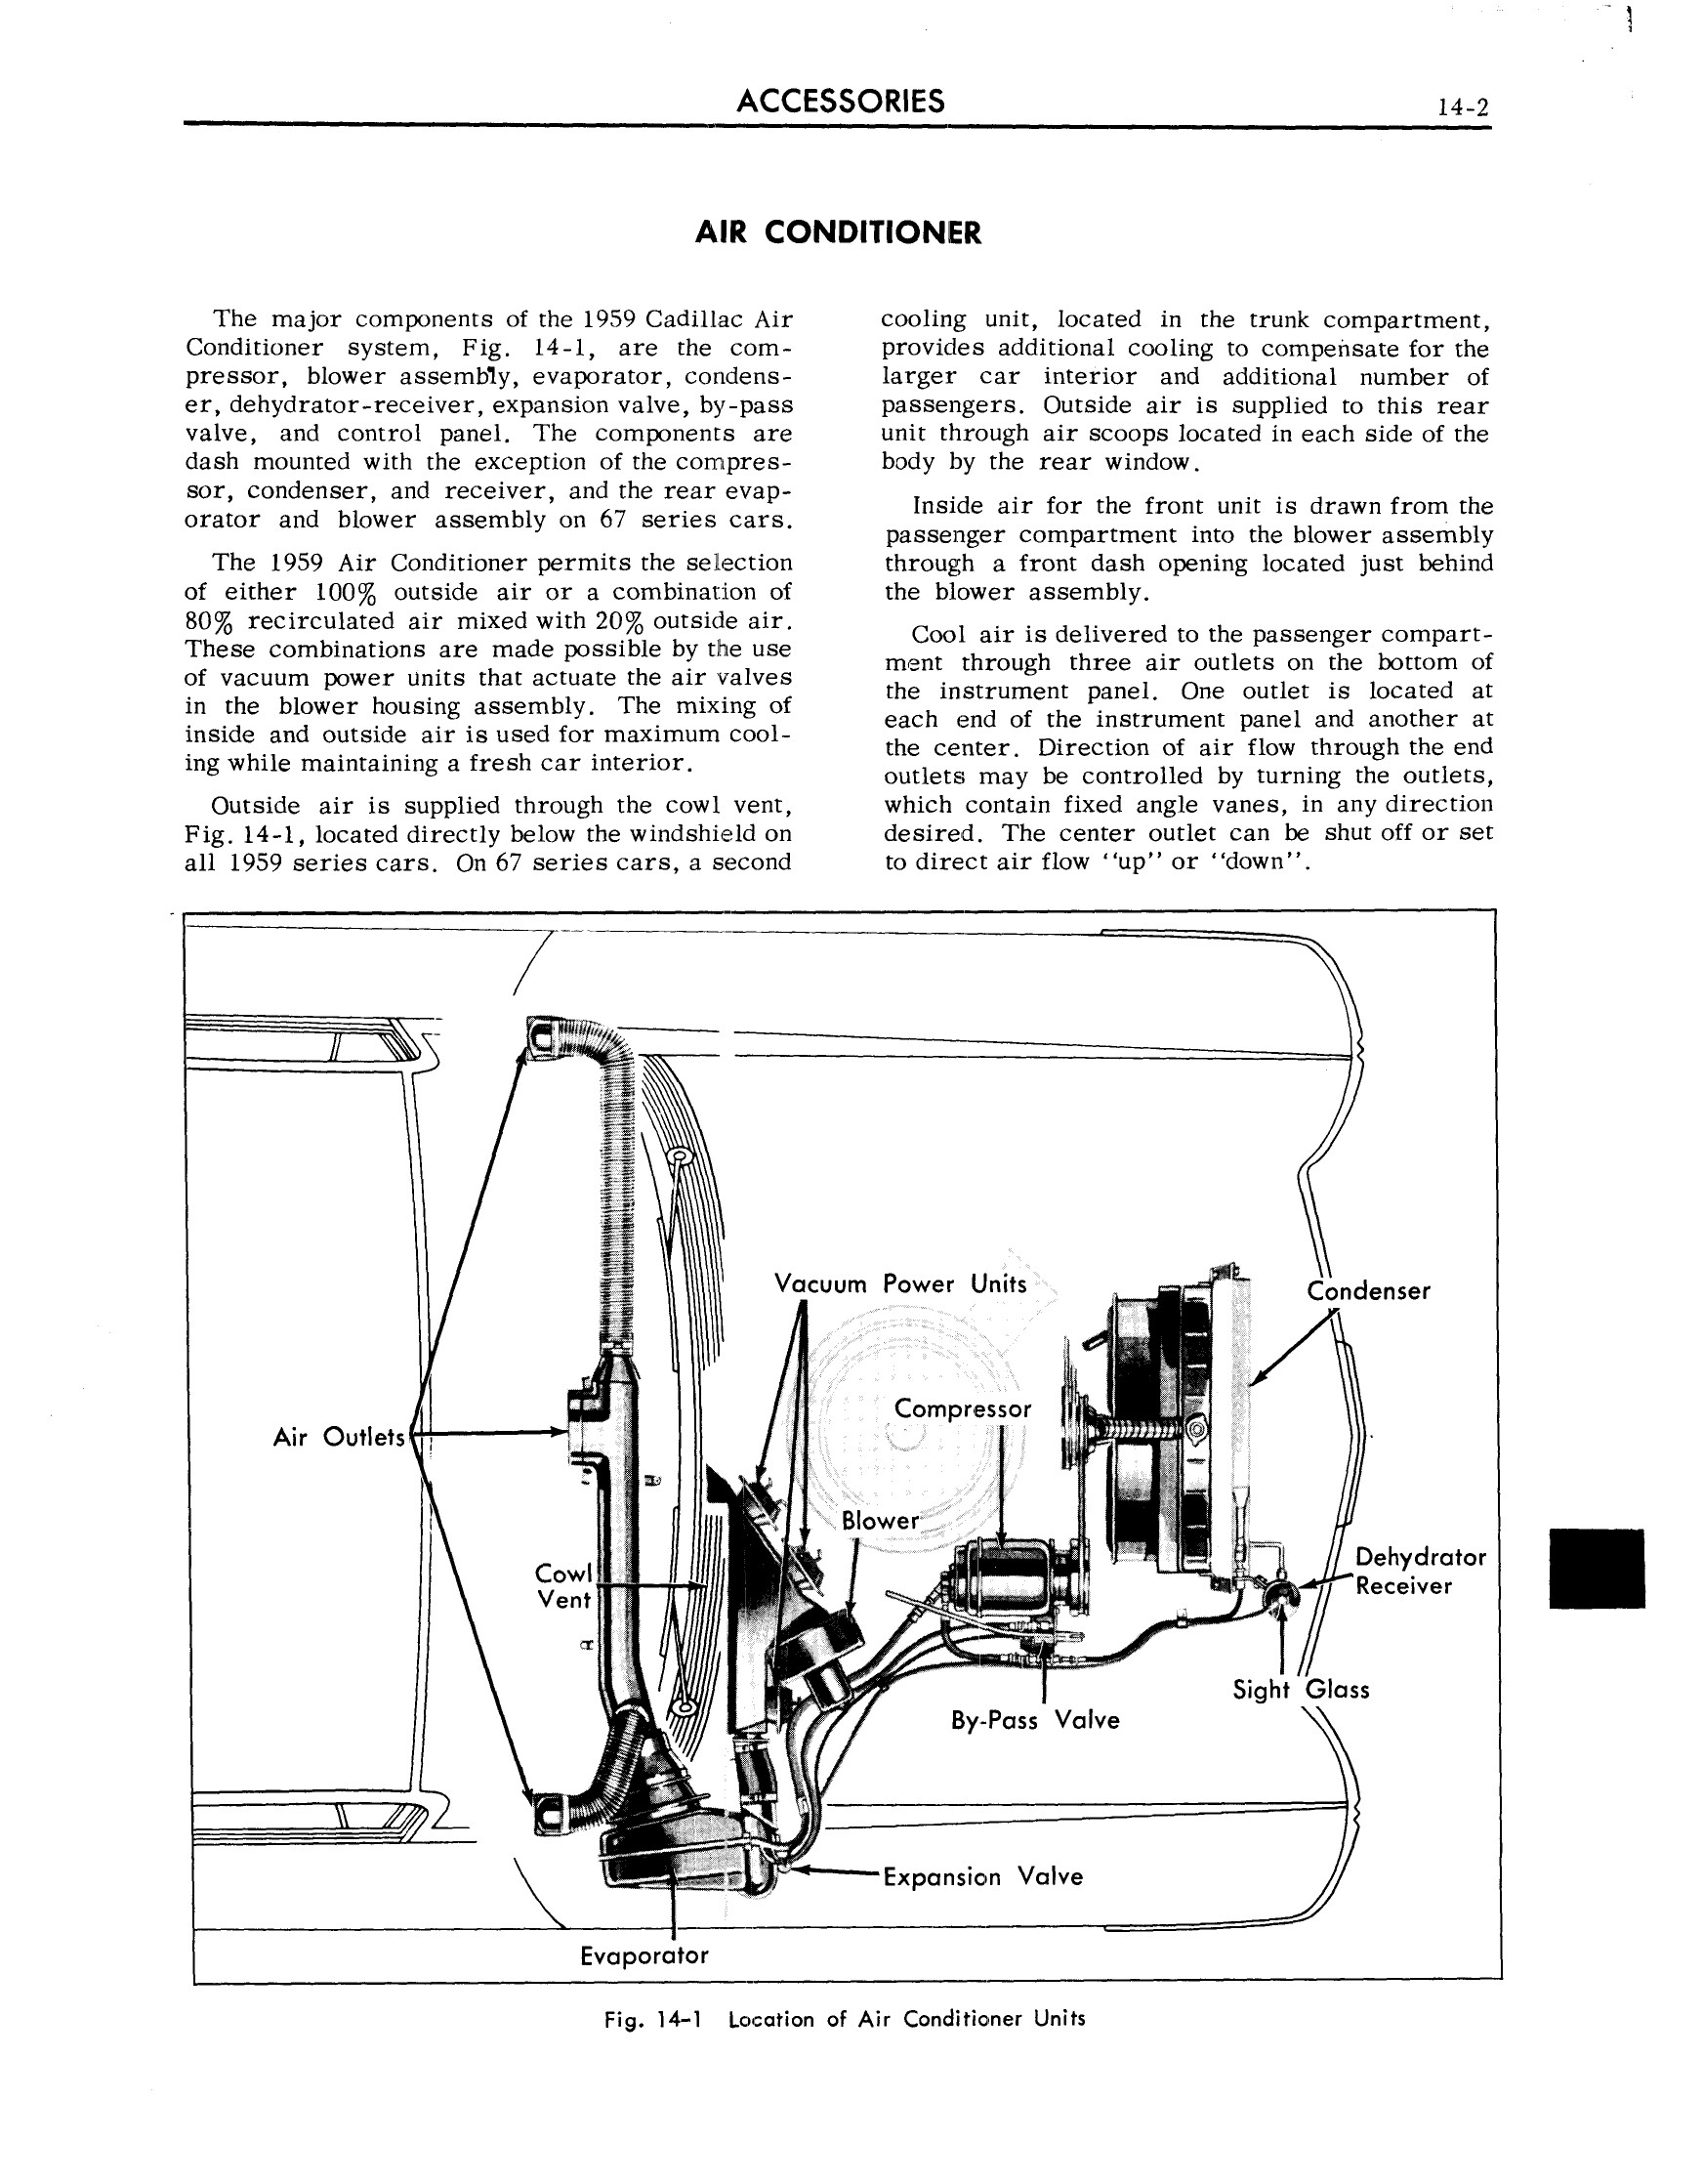 1959 Cadillac Shop Manual- Accessories Page 2 of 58